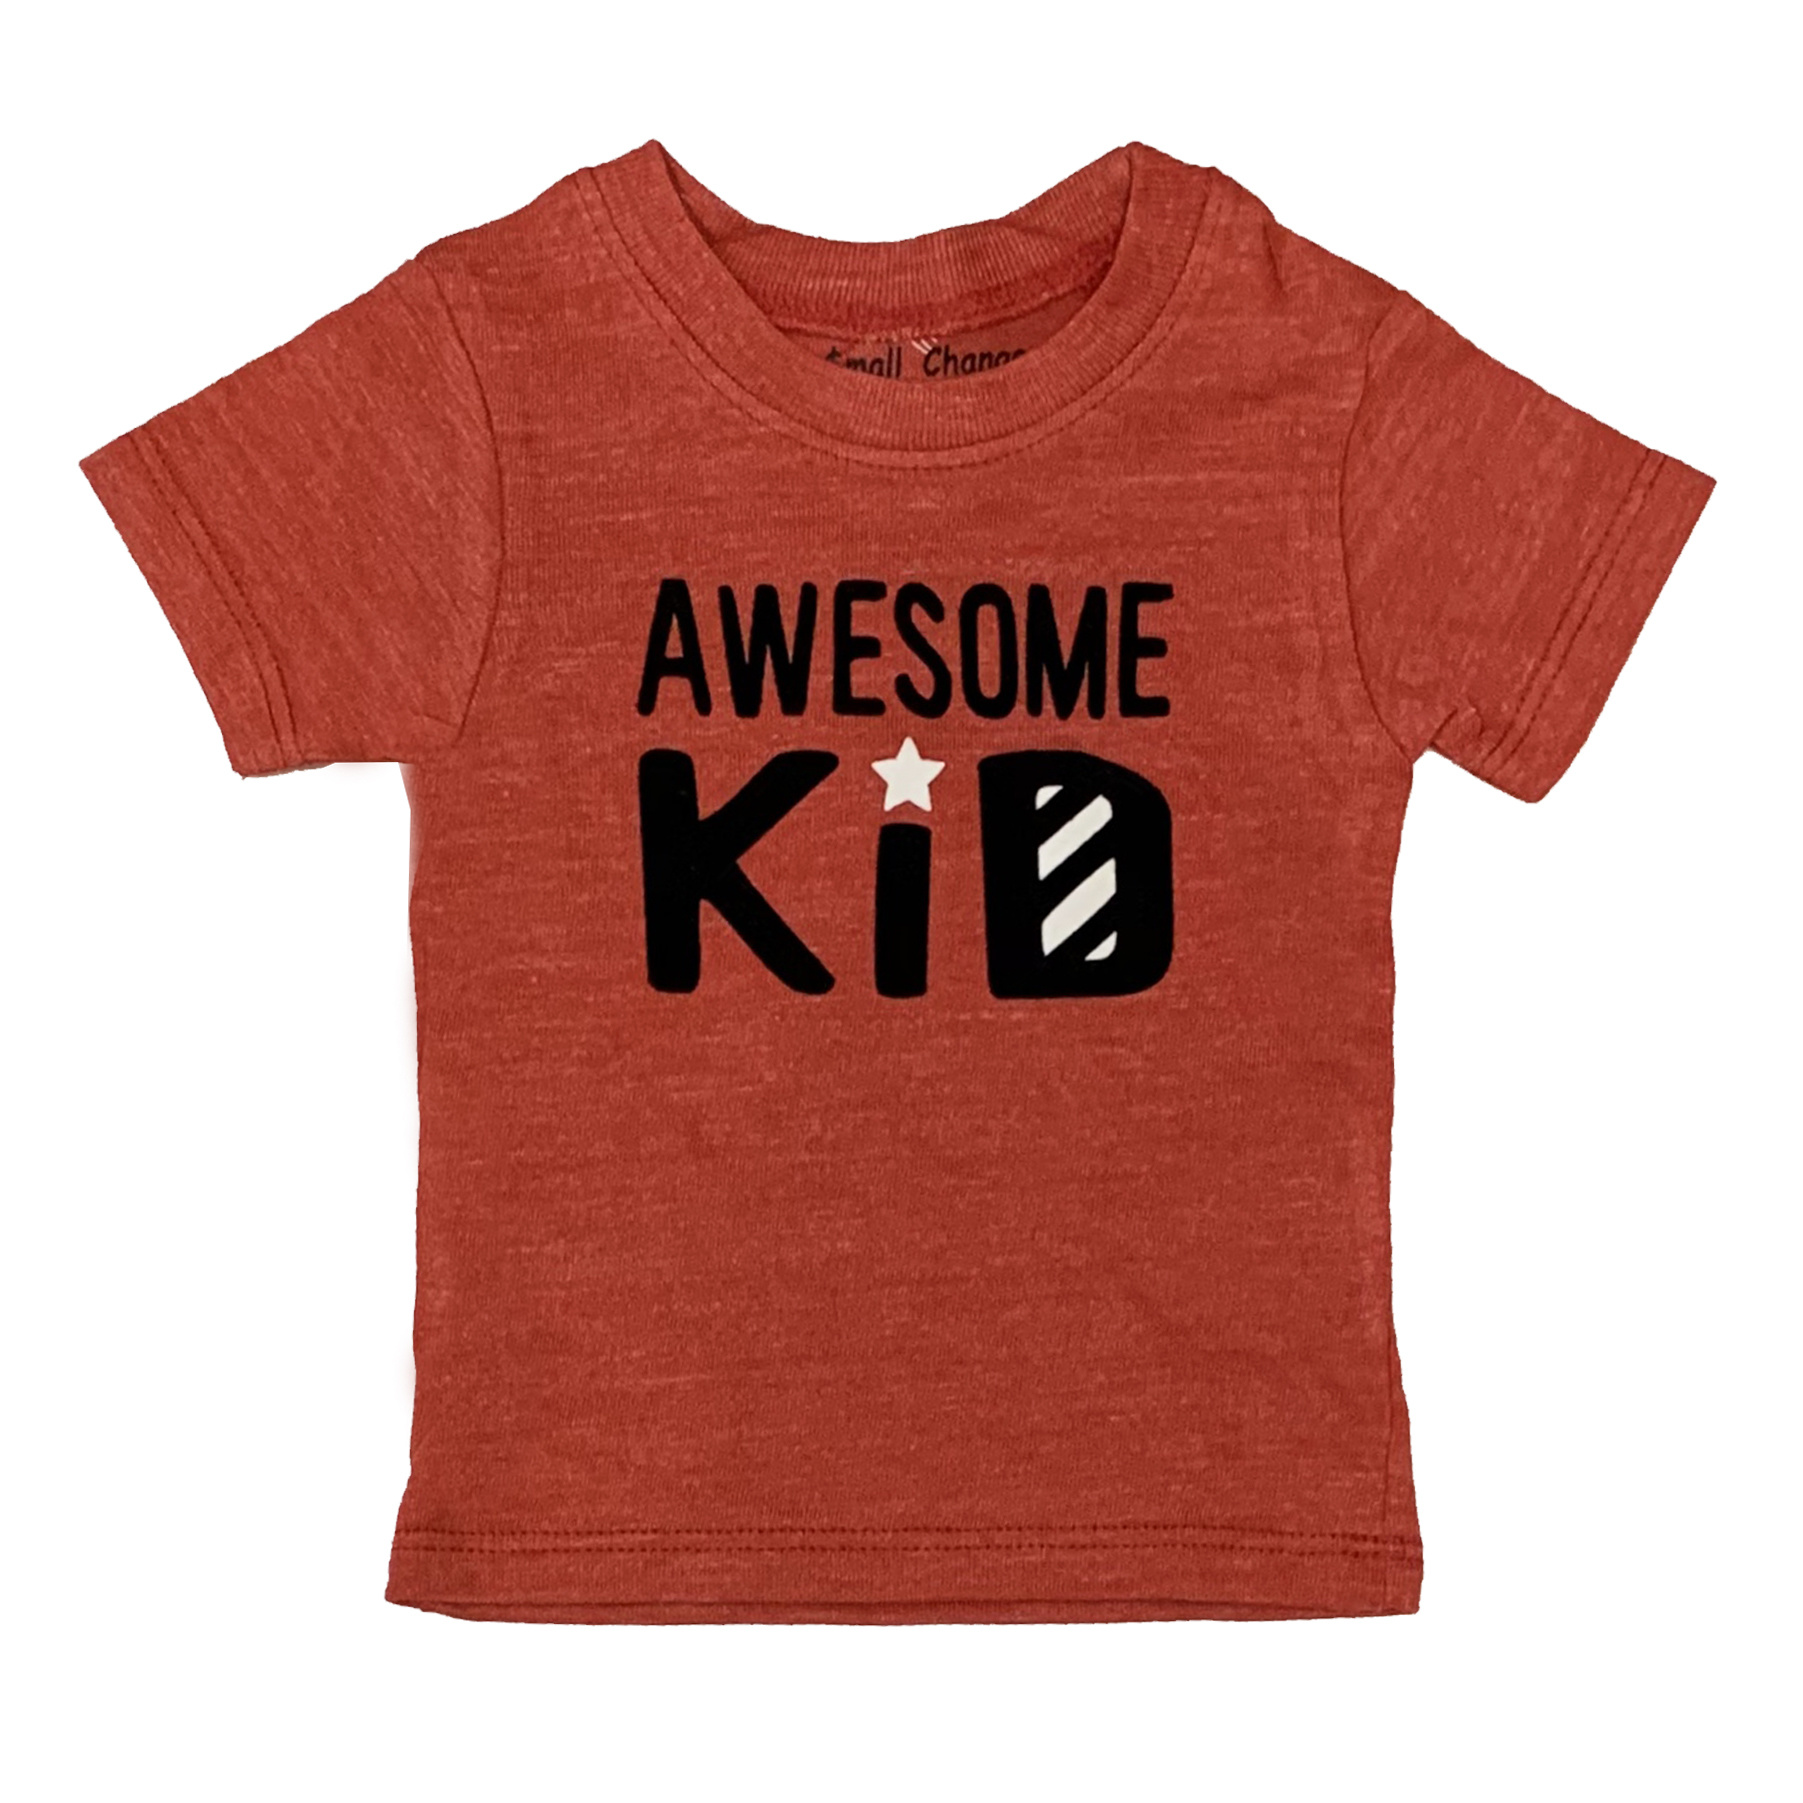 Small Change Red Awesome Kid Tee